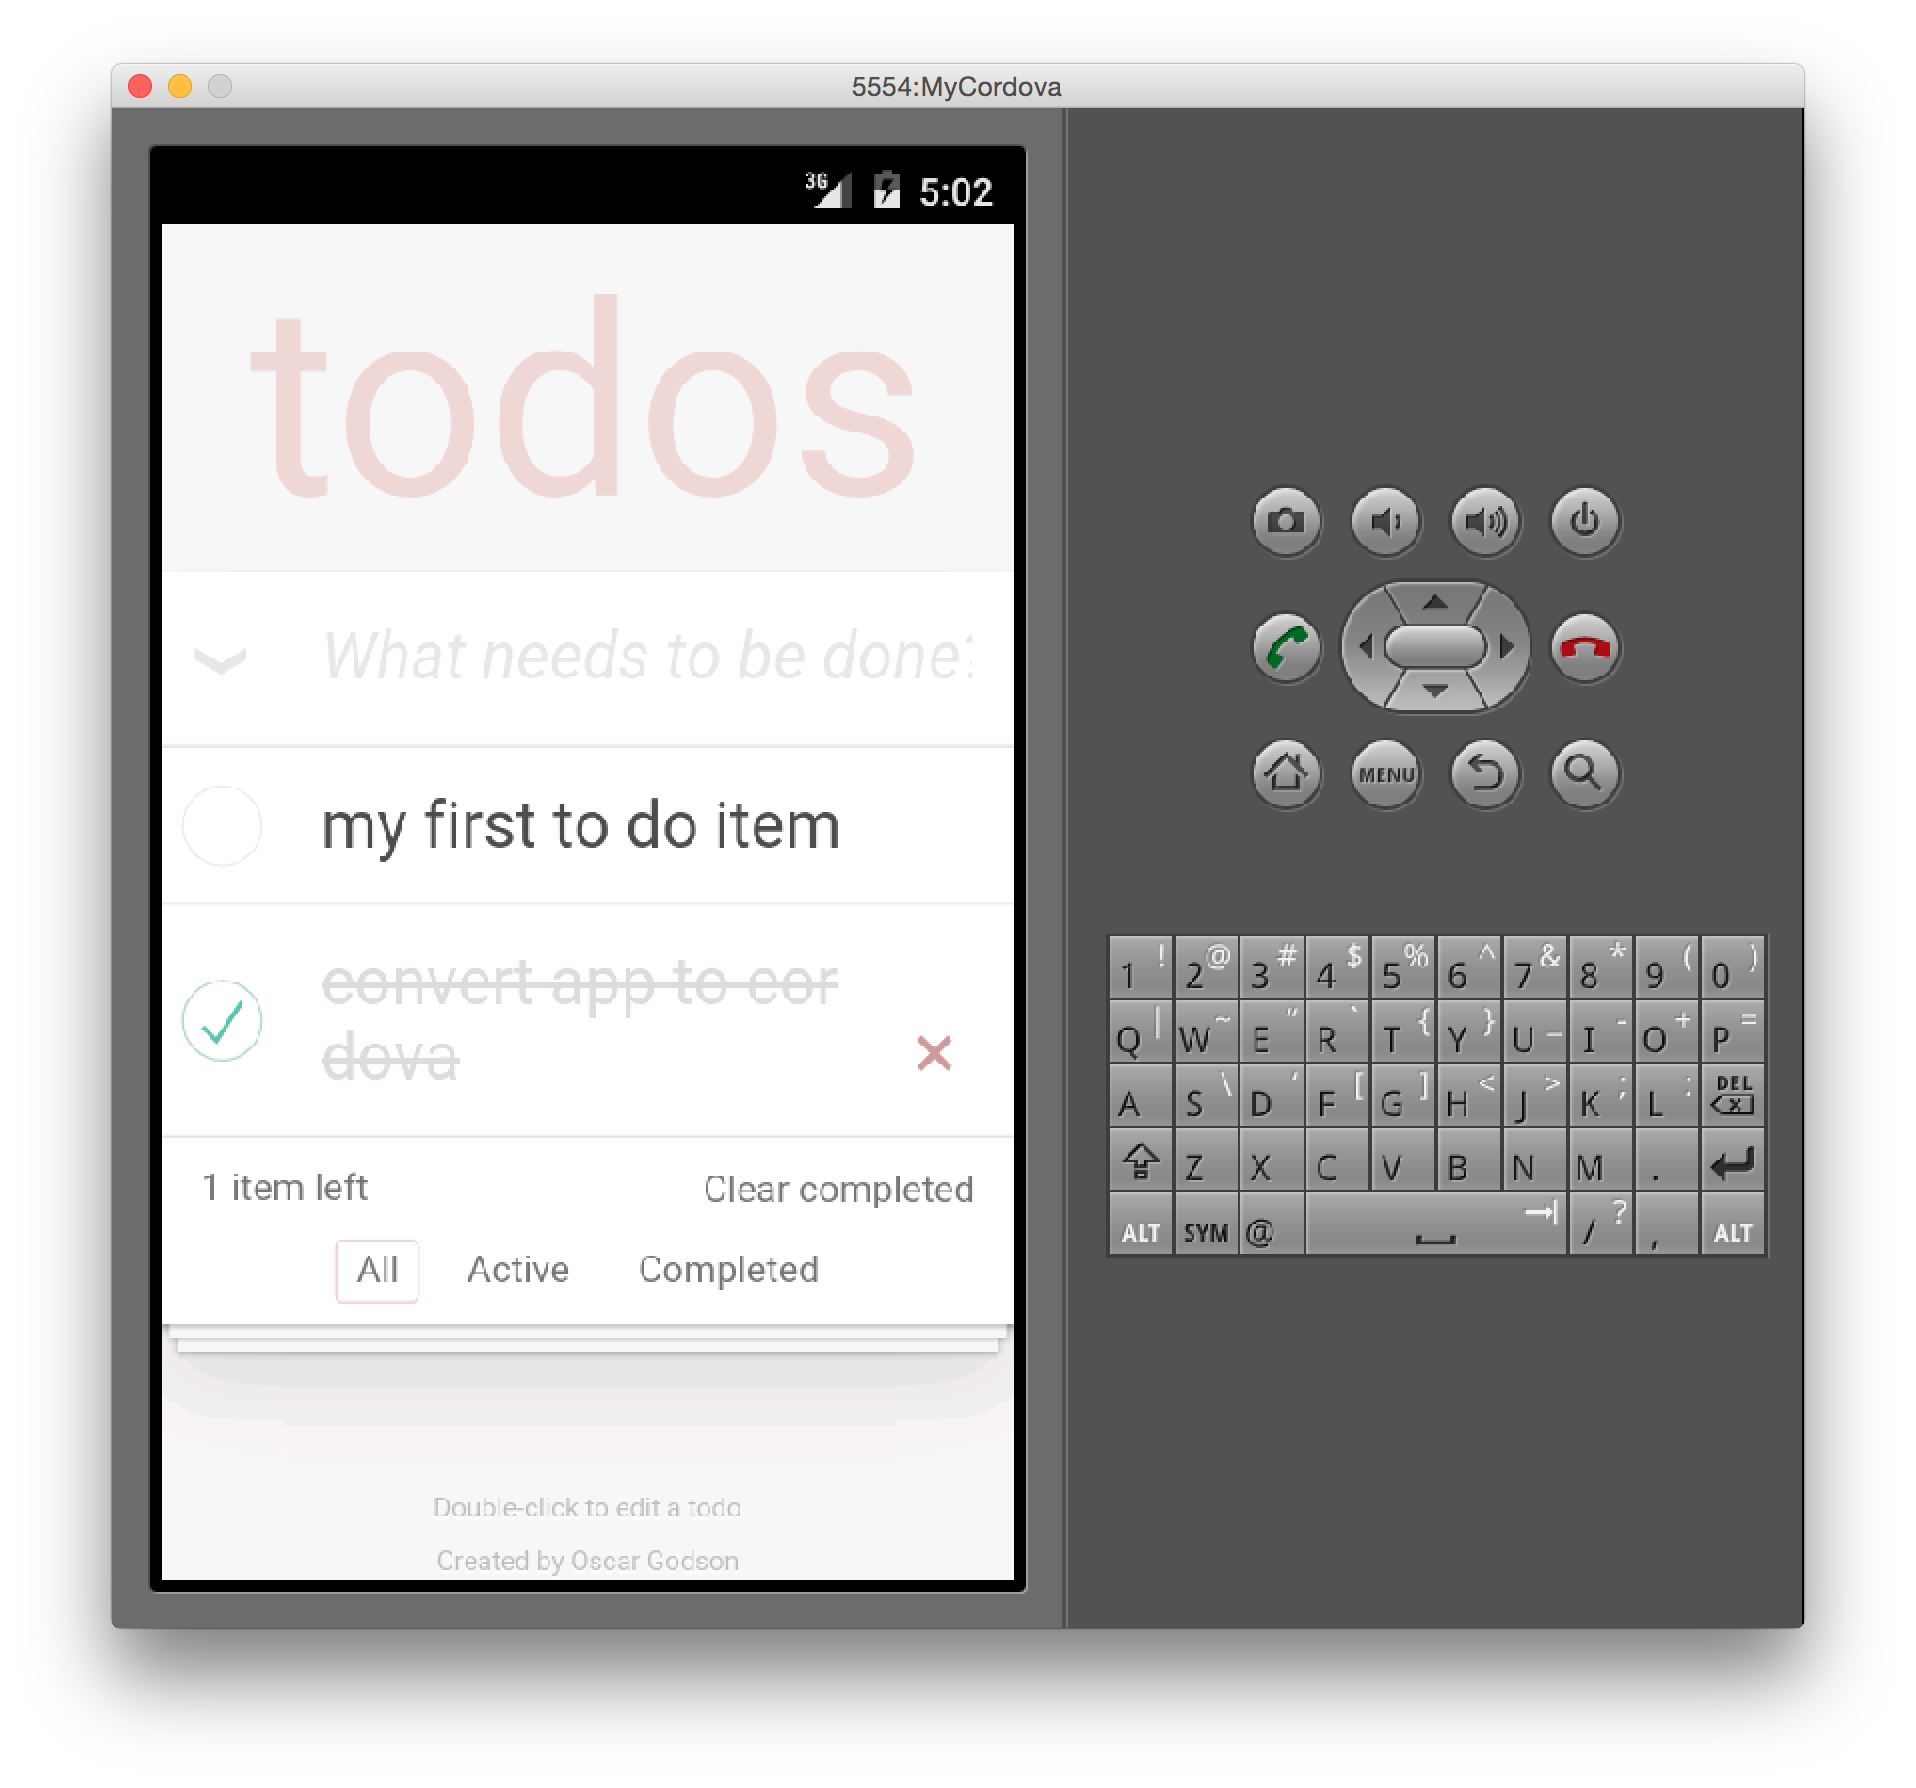 Running the app in Android